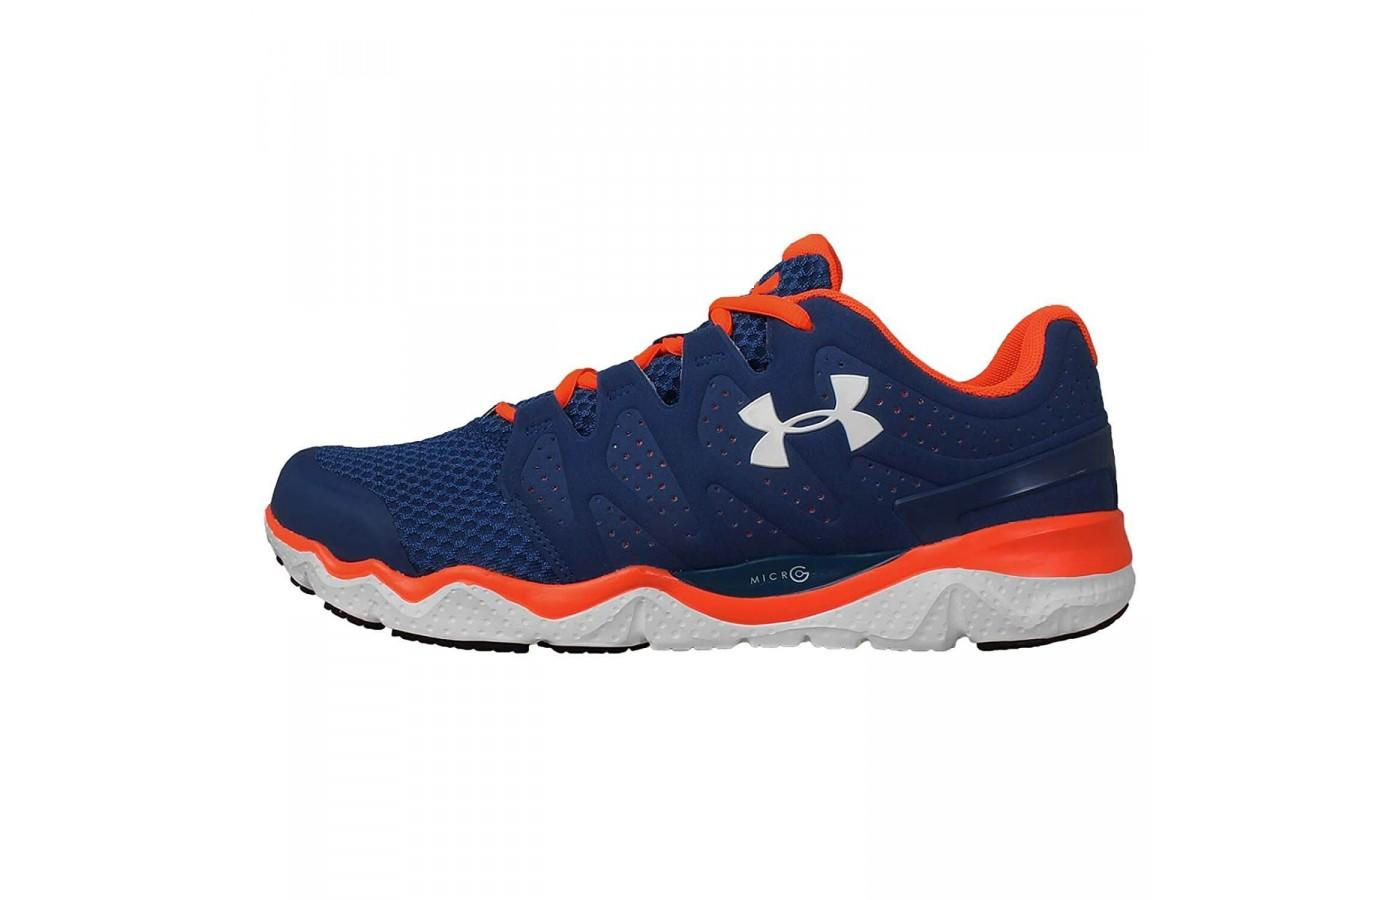 Under Armour Micro G Optimum has impressive stylings